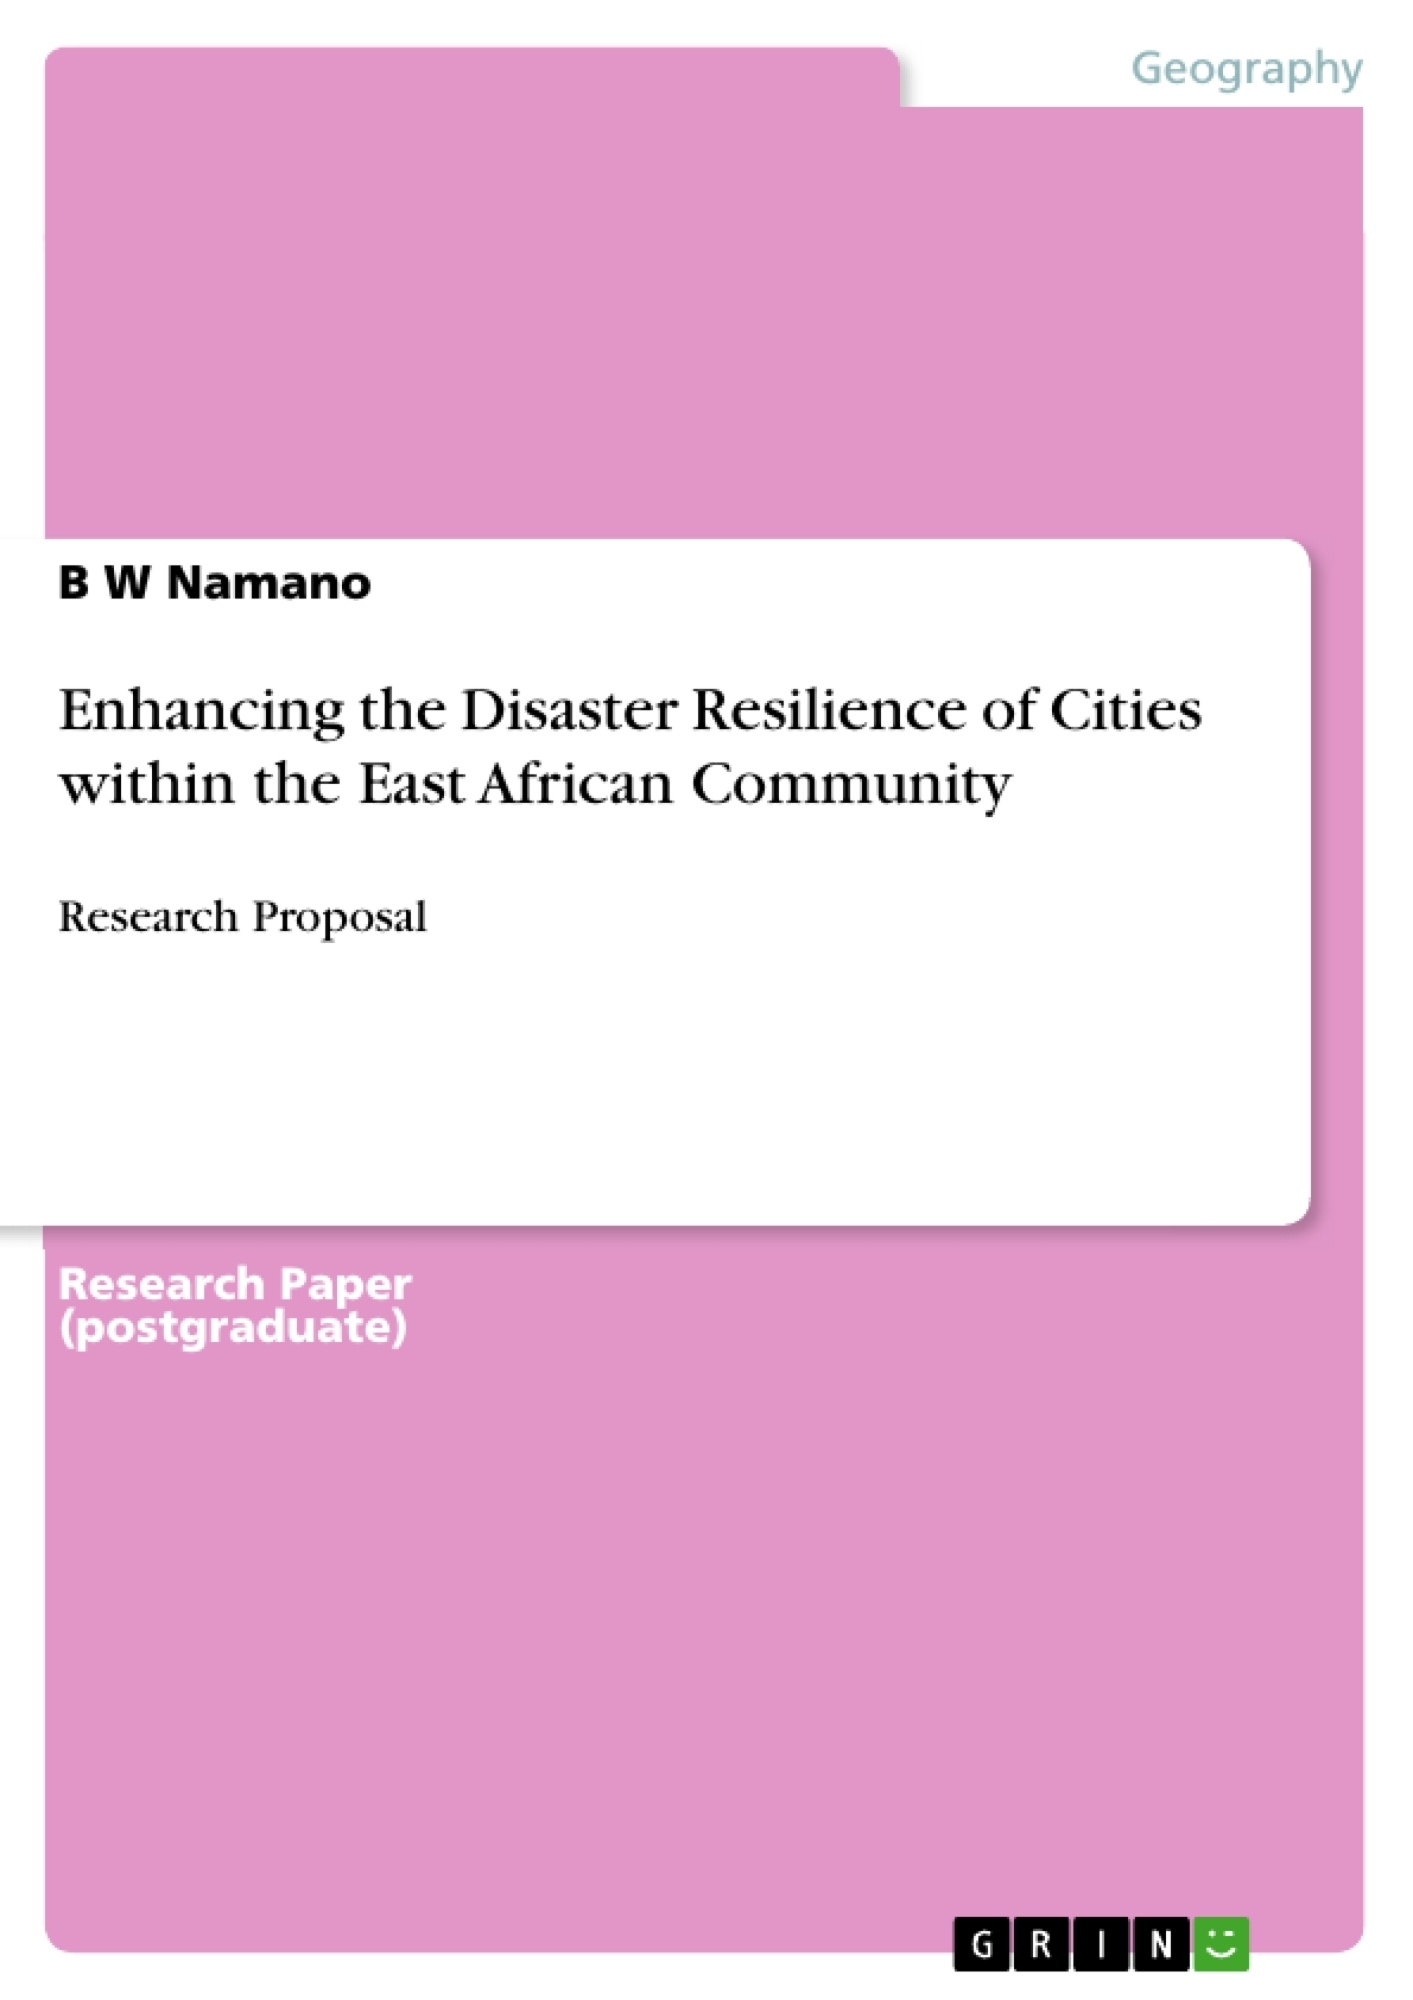 Title: Enhancing the Disaster Resilience of Cities within the East African Community